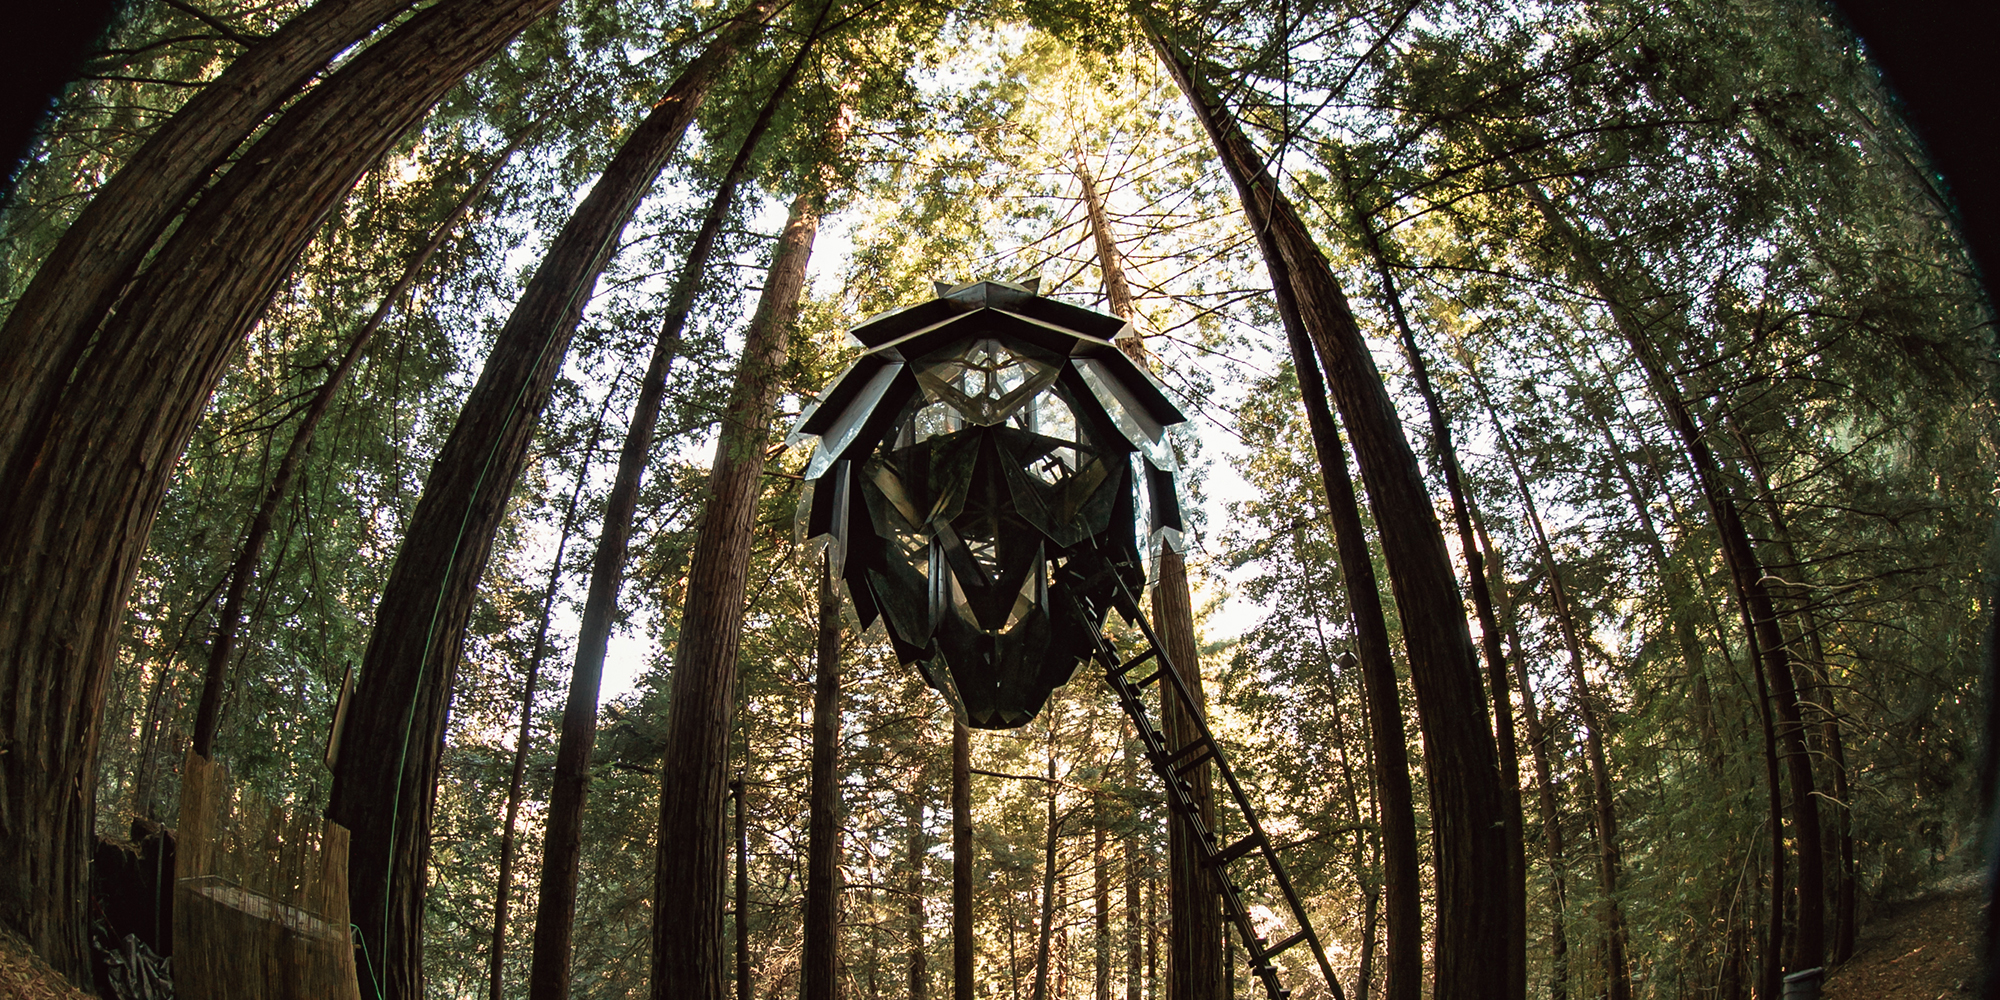 pinecone-series-guayaki-third-eye-o2-treehouse-forest-6.jpg